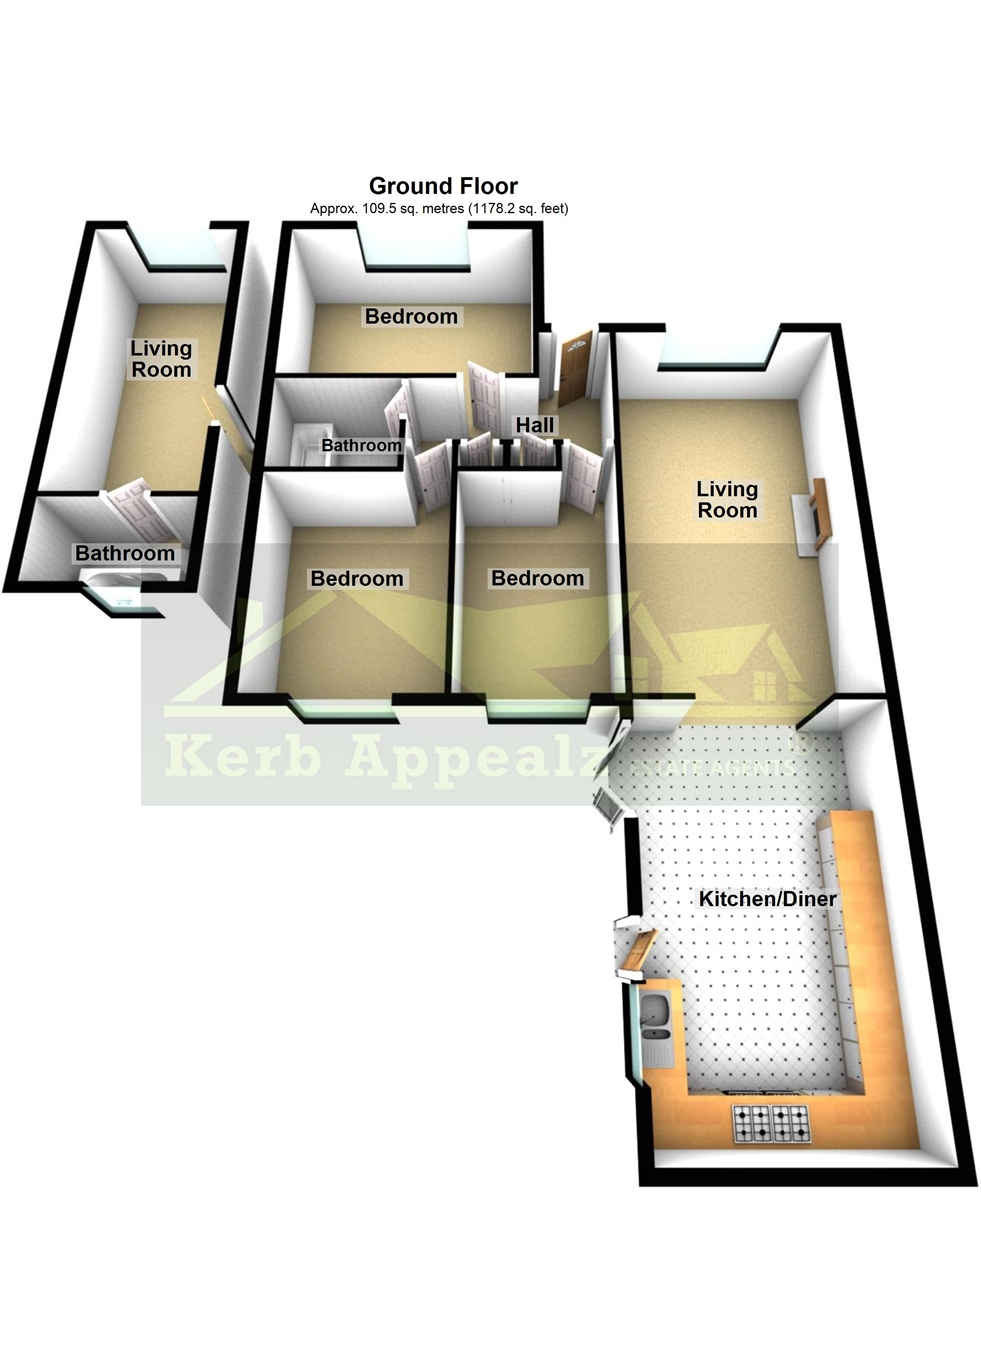 Floorplan 1 of  for sale in Carbis Bay